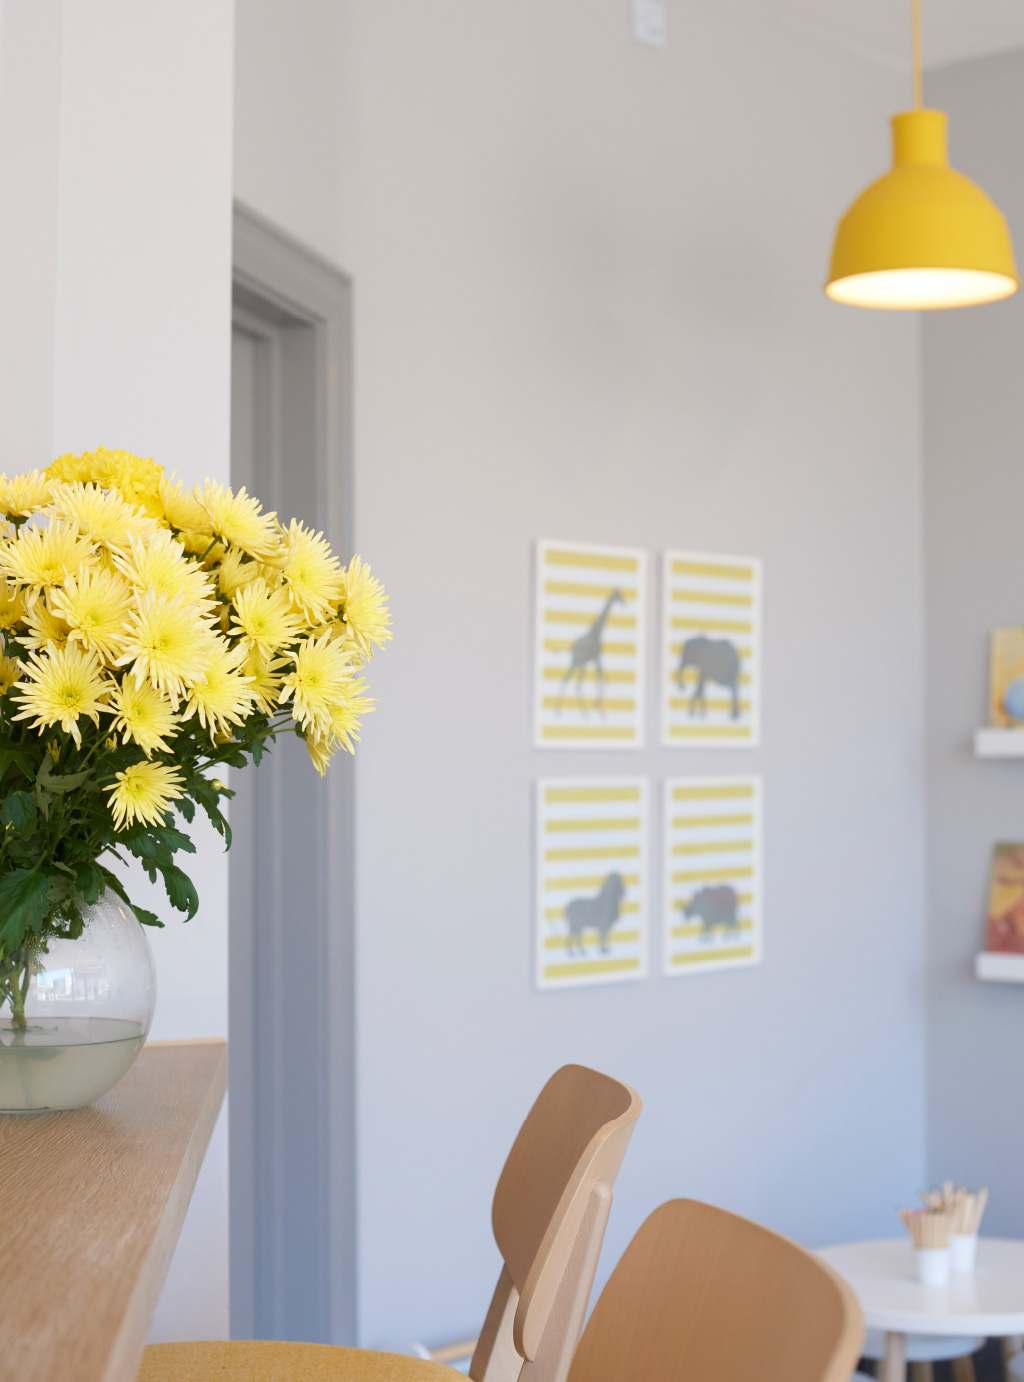 grey wall with four yellow pictures on it, yellow flowers and wooden chairs in the front and a yellow drop light